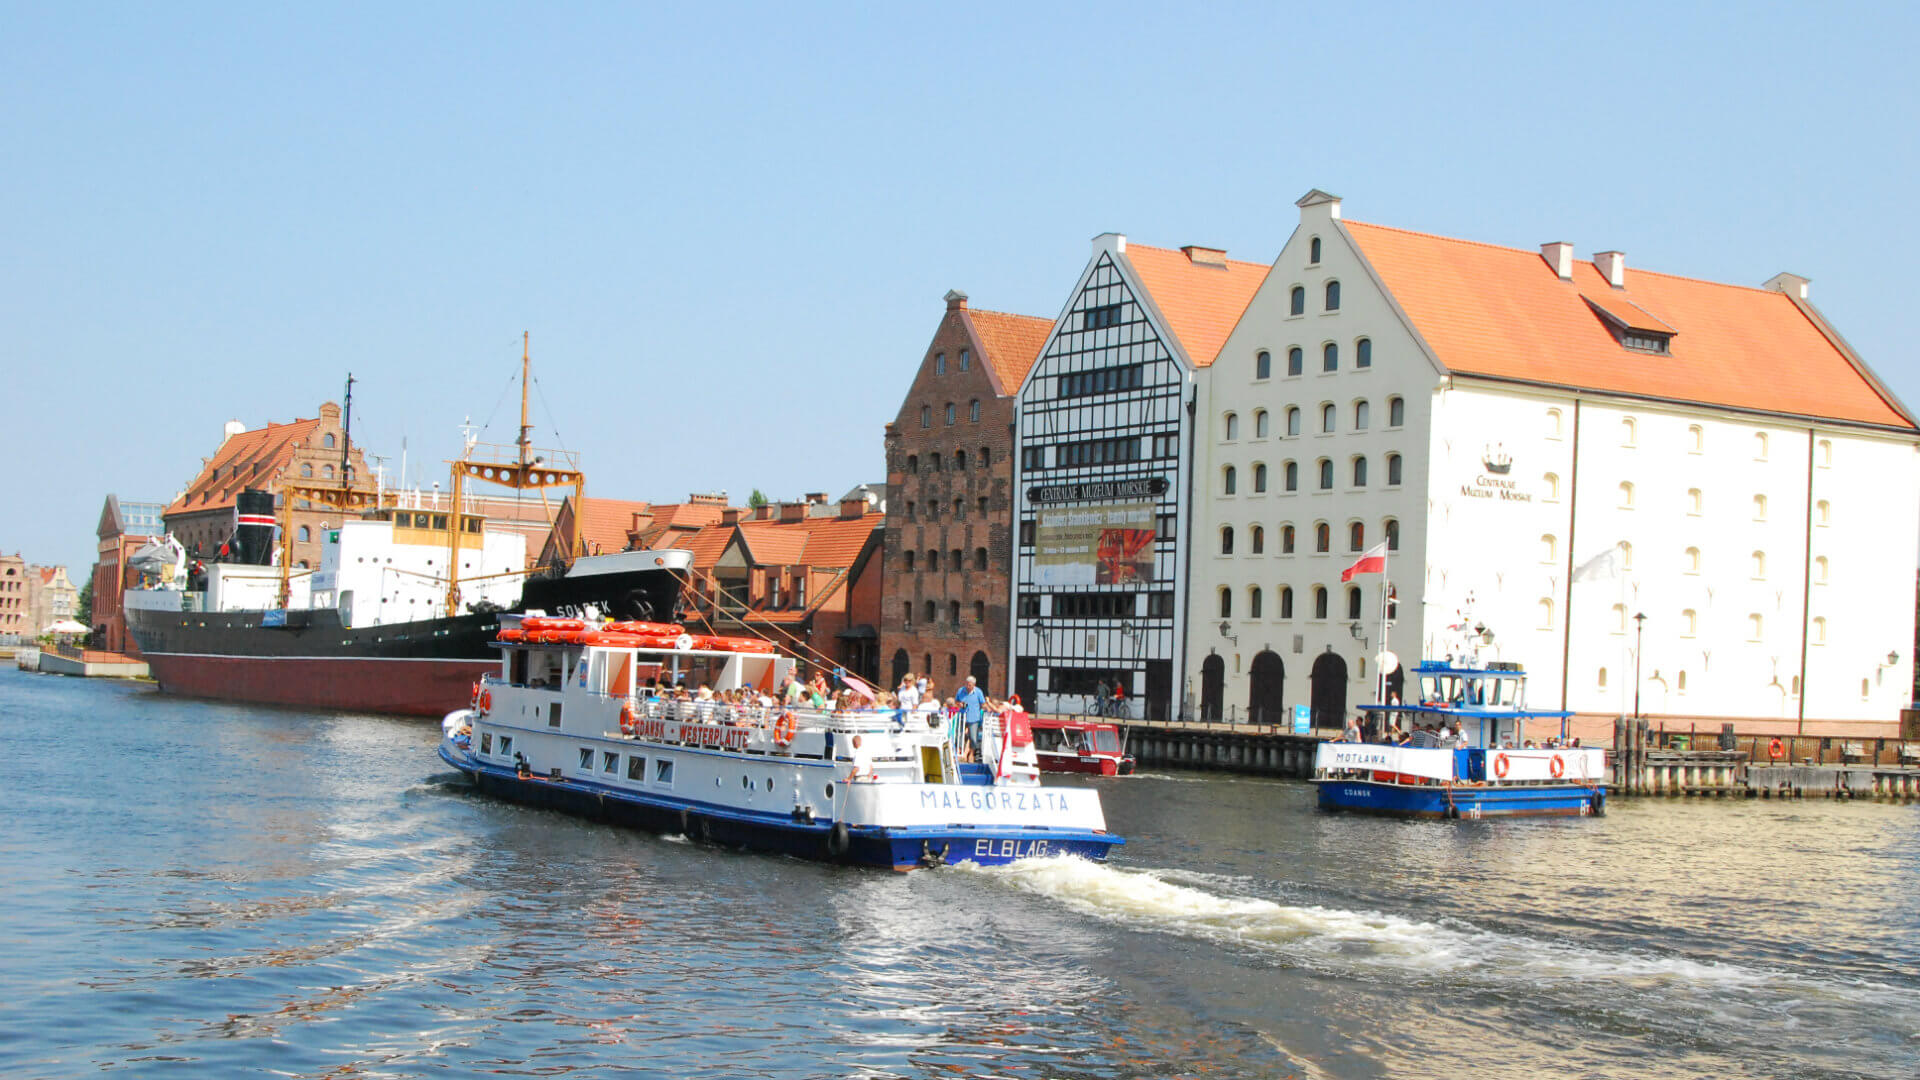 View at the Motława river. Ferries take tourists for boattrips. The buildings were also old granaries.